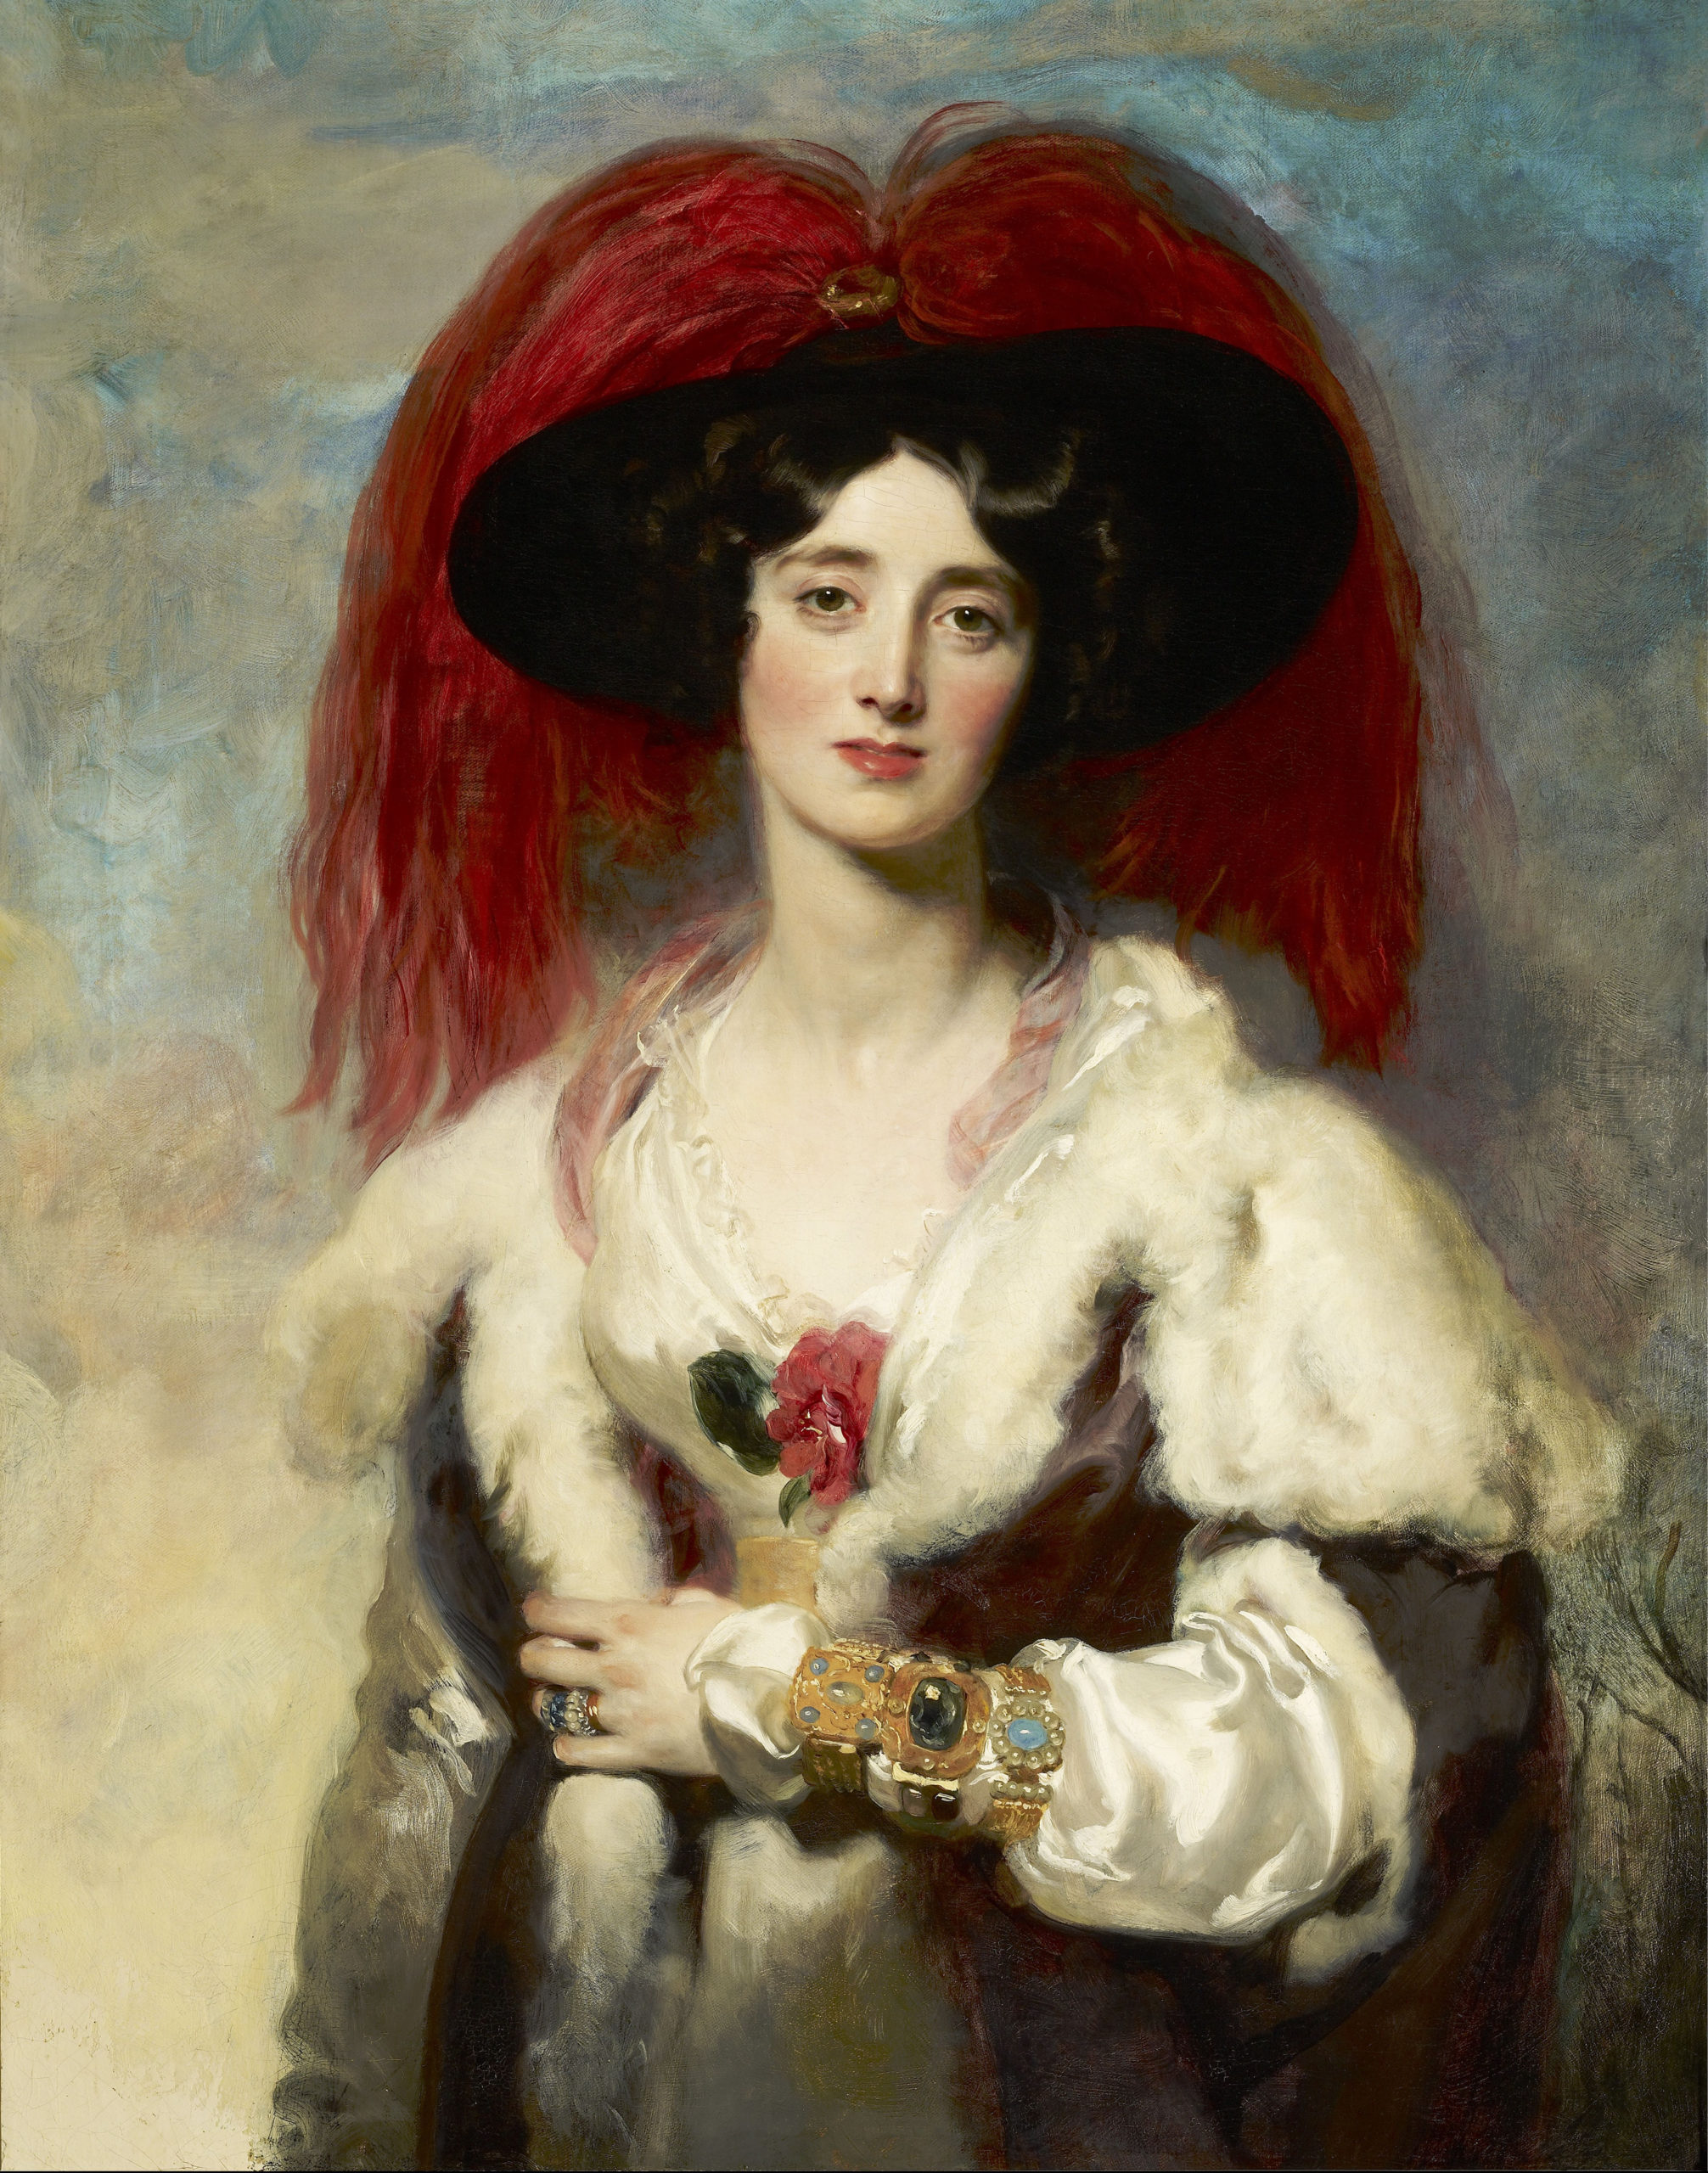 Julia, Lady Peel painted by Lawrence in 1827